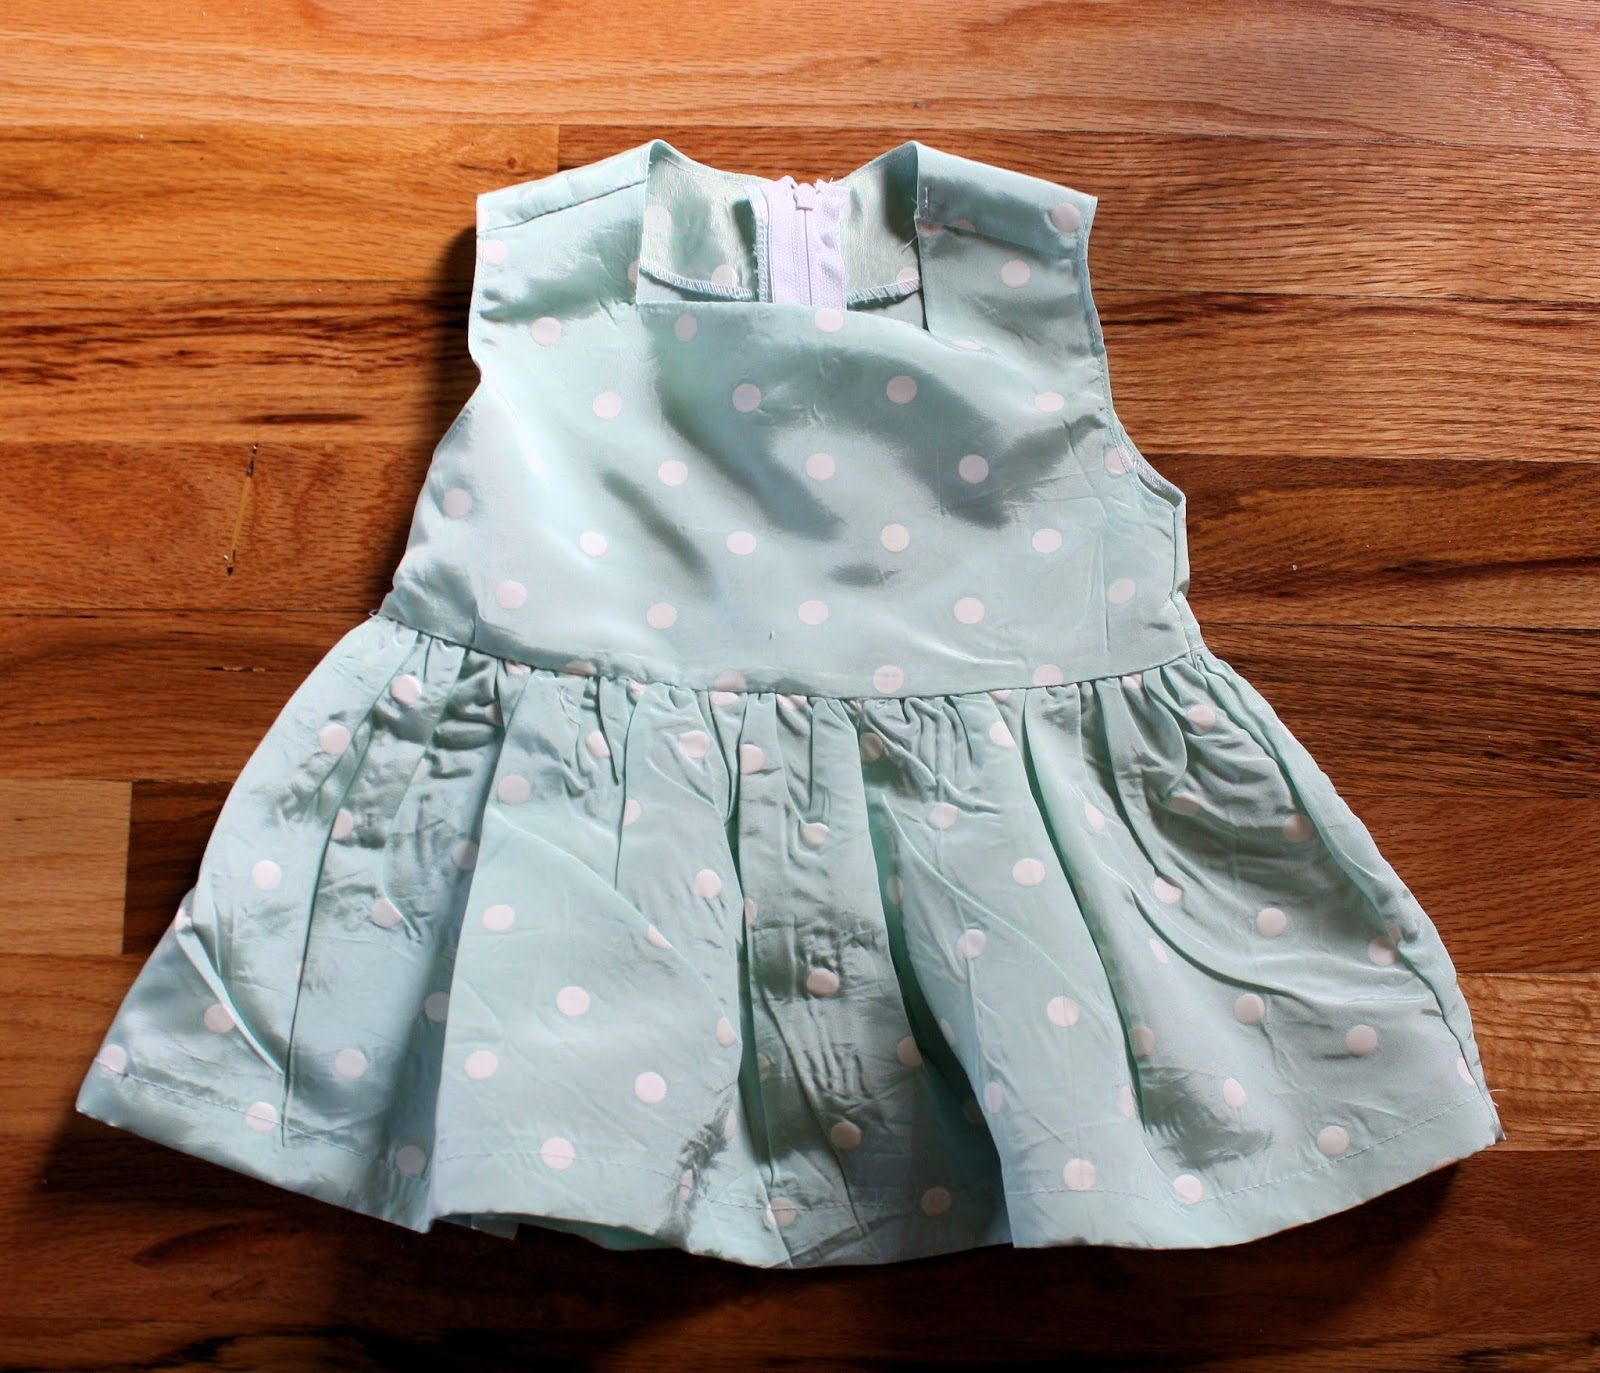 Running With Scissors Birthday Dress for a Baby Girl